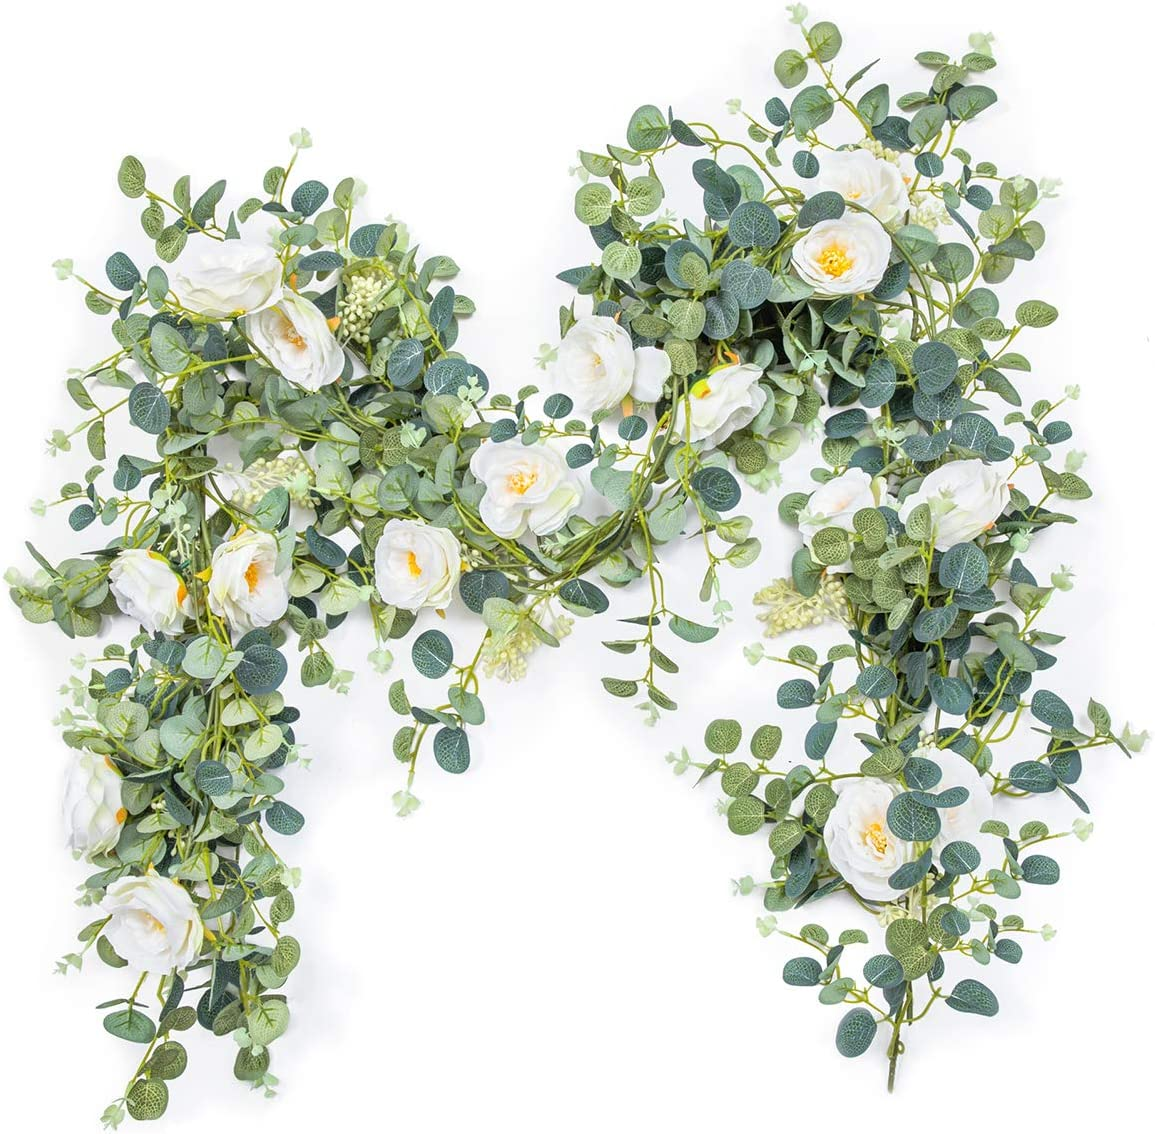 OasisCraft Artificial Flower Eucalyptus Garland with Camellias, 6ft Fake Silk Rose Vine Decorations Hanging Faux Leaves Floral Greenery for Wedding Backdrop, Garden Home Office Party, Arch Table Decor